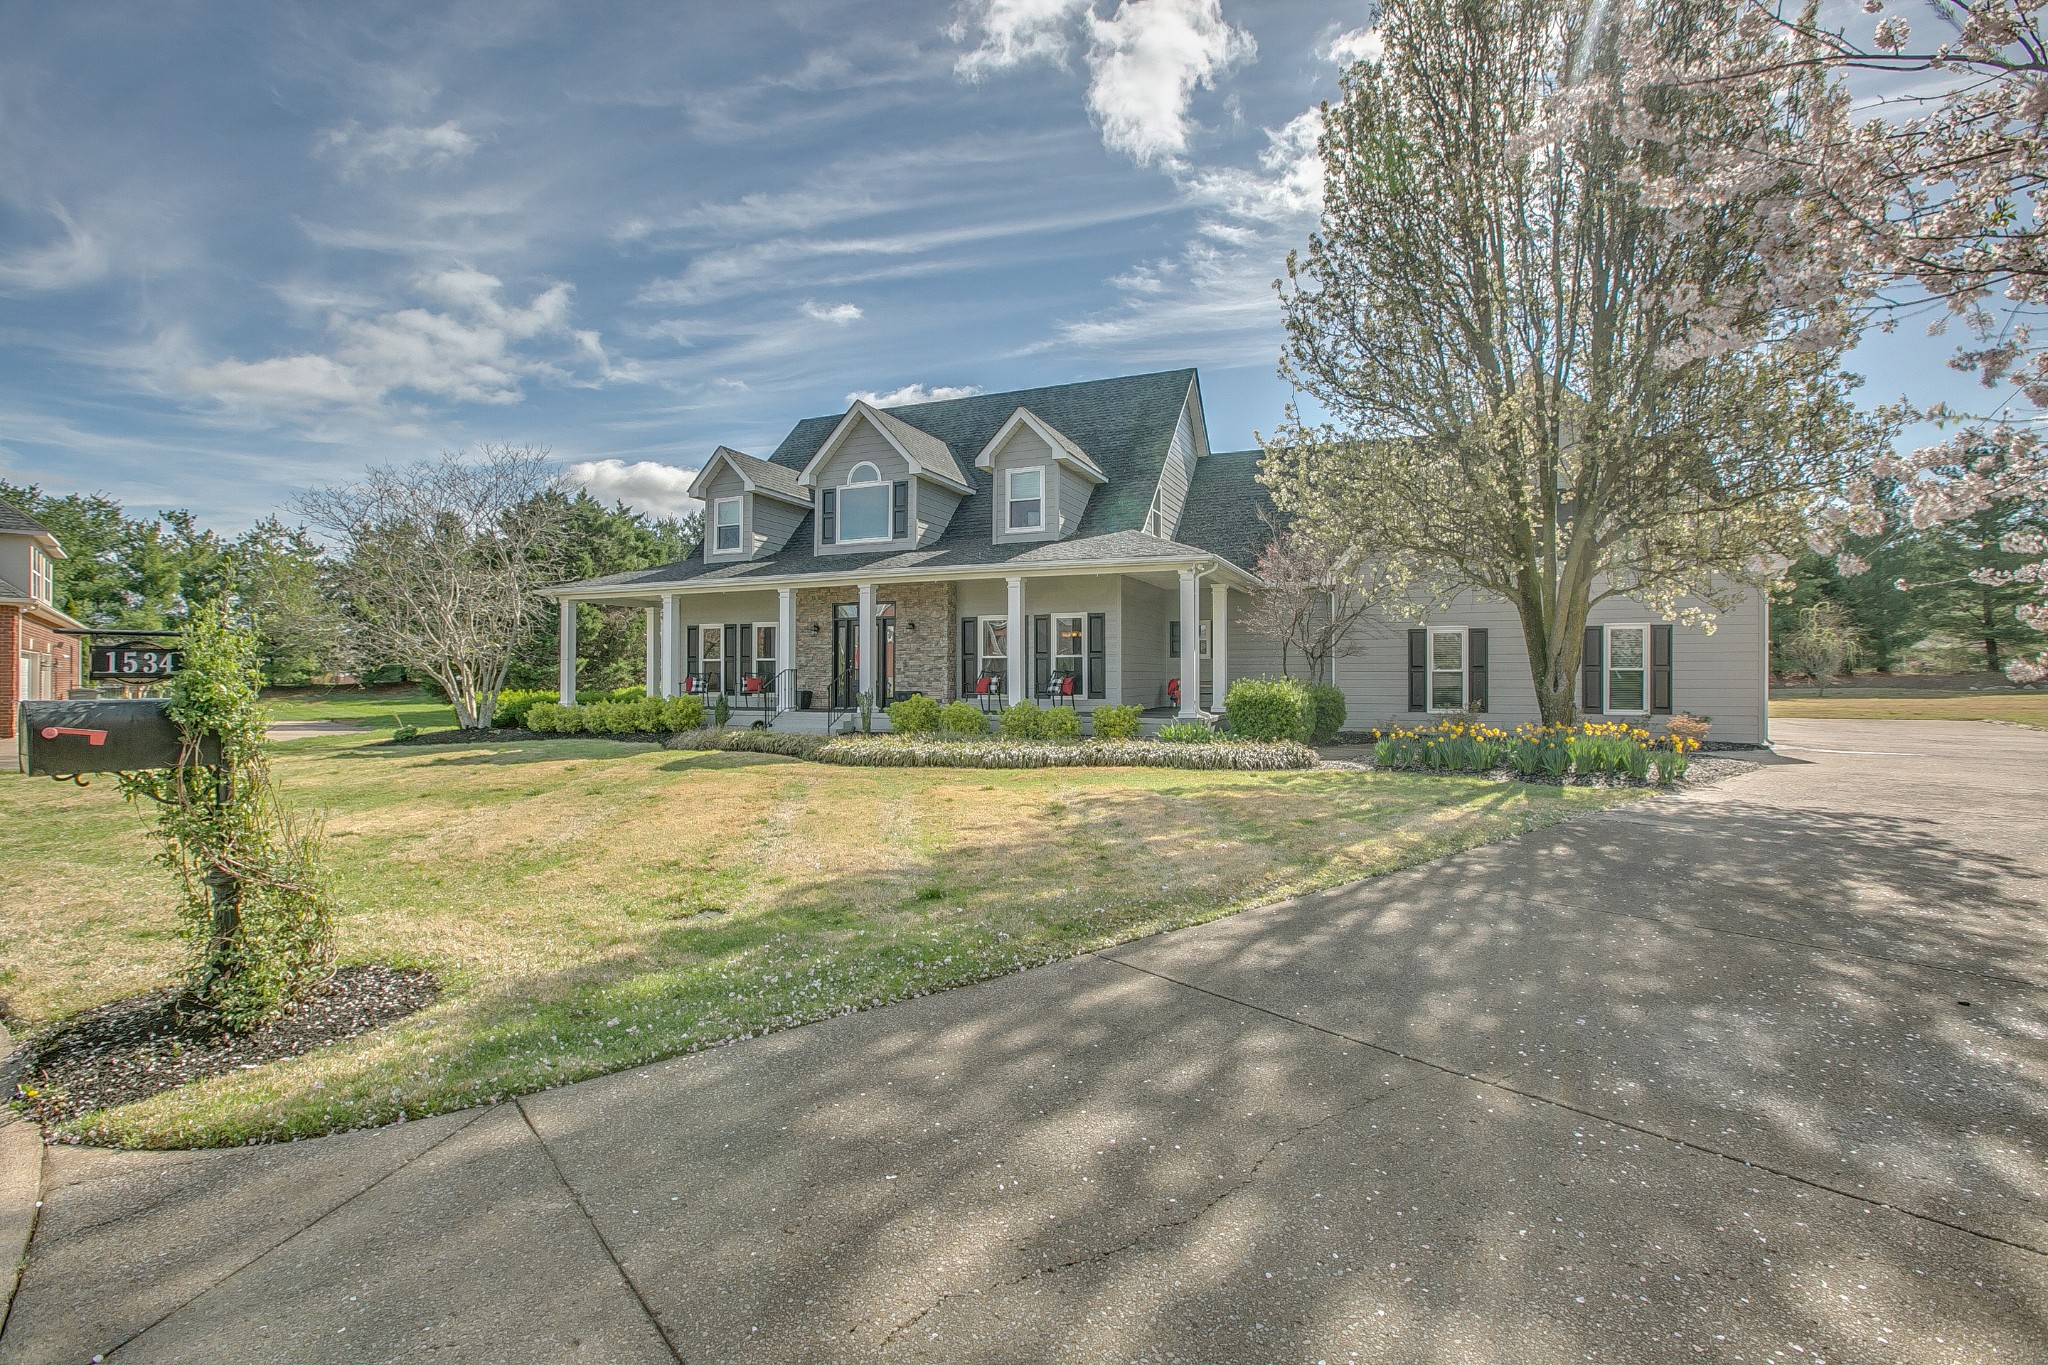 1534 Anatole Ct Property Photo - Murfreesboro, TN real estate listing